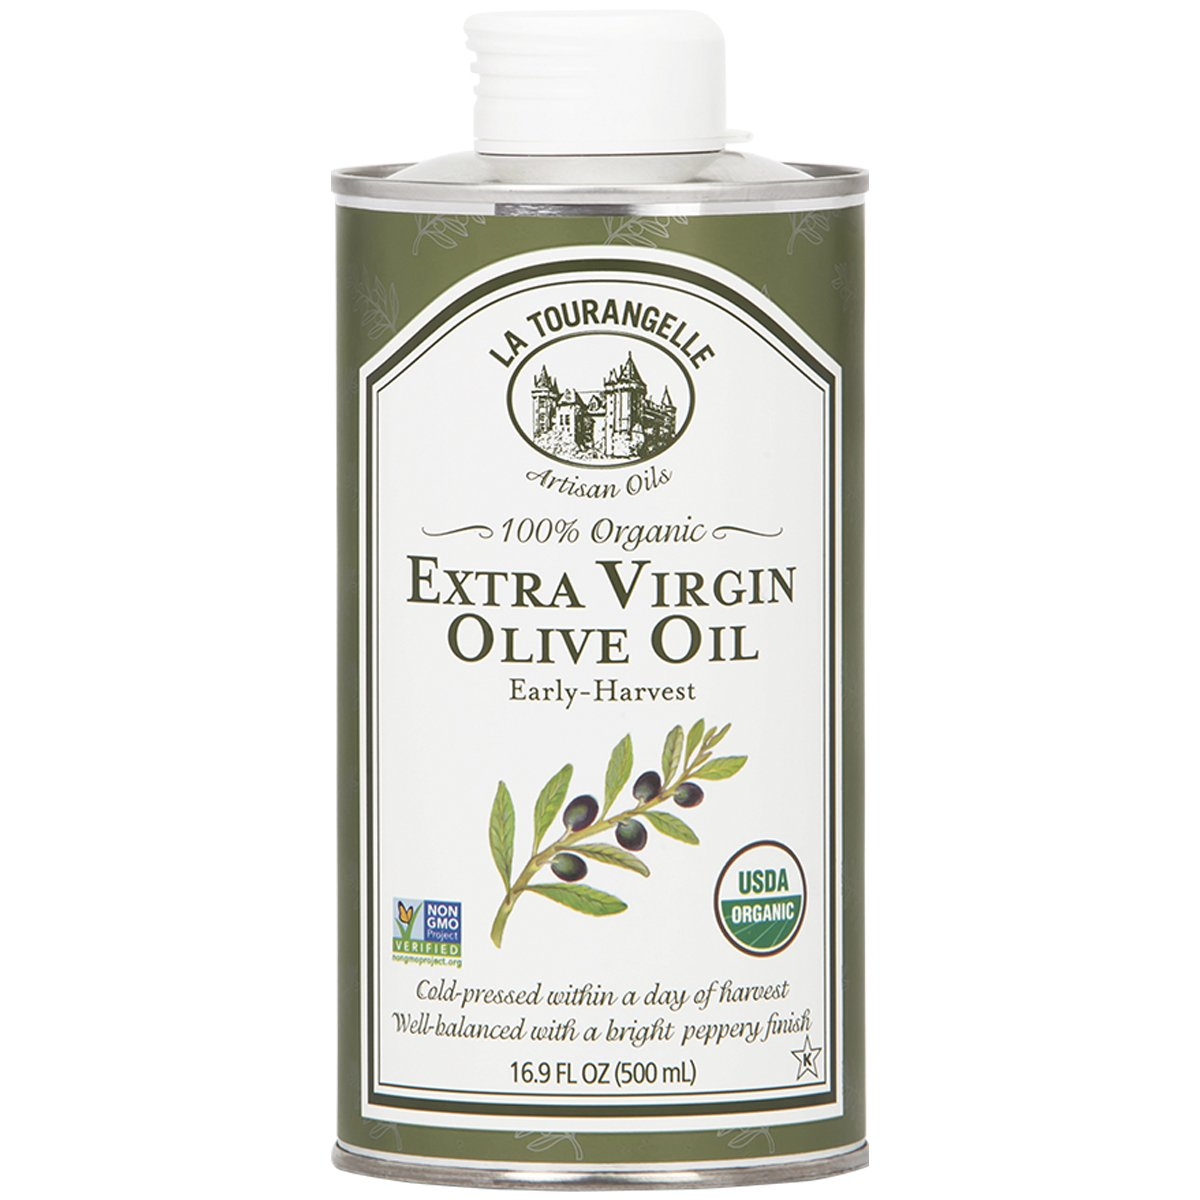 La Tourangelle Organic Extra Virgin Olive Oil 16.9 Fl. Oz, Organic Cold-Pressed Extra Virgin Olive Oil, All-Natural, Artisanal, Great for Cooking, Sauteing, and Dressing